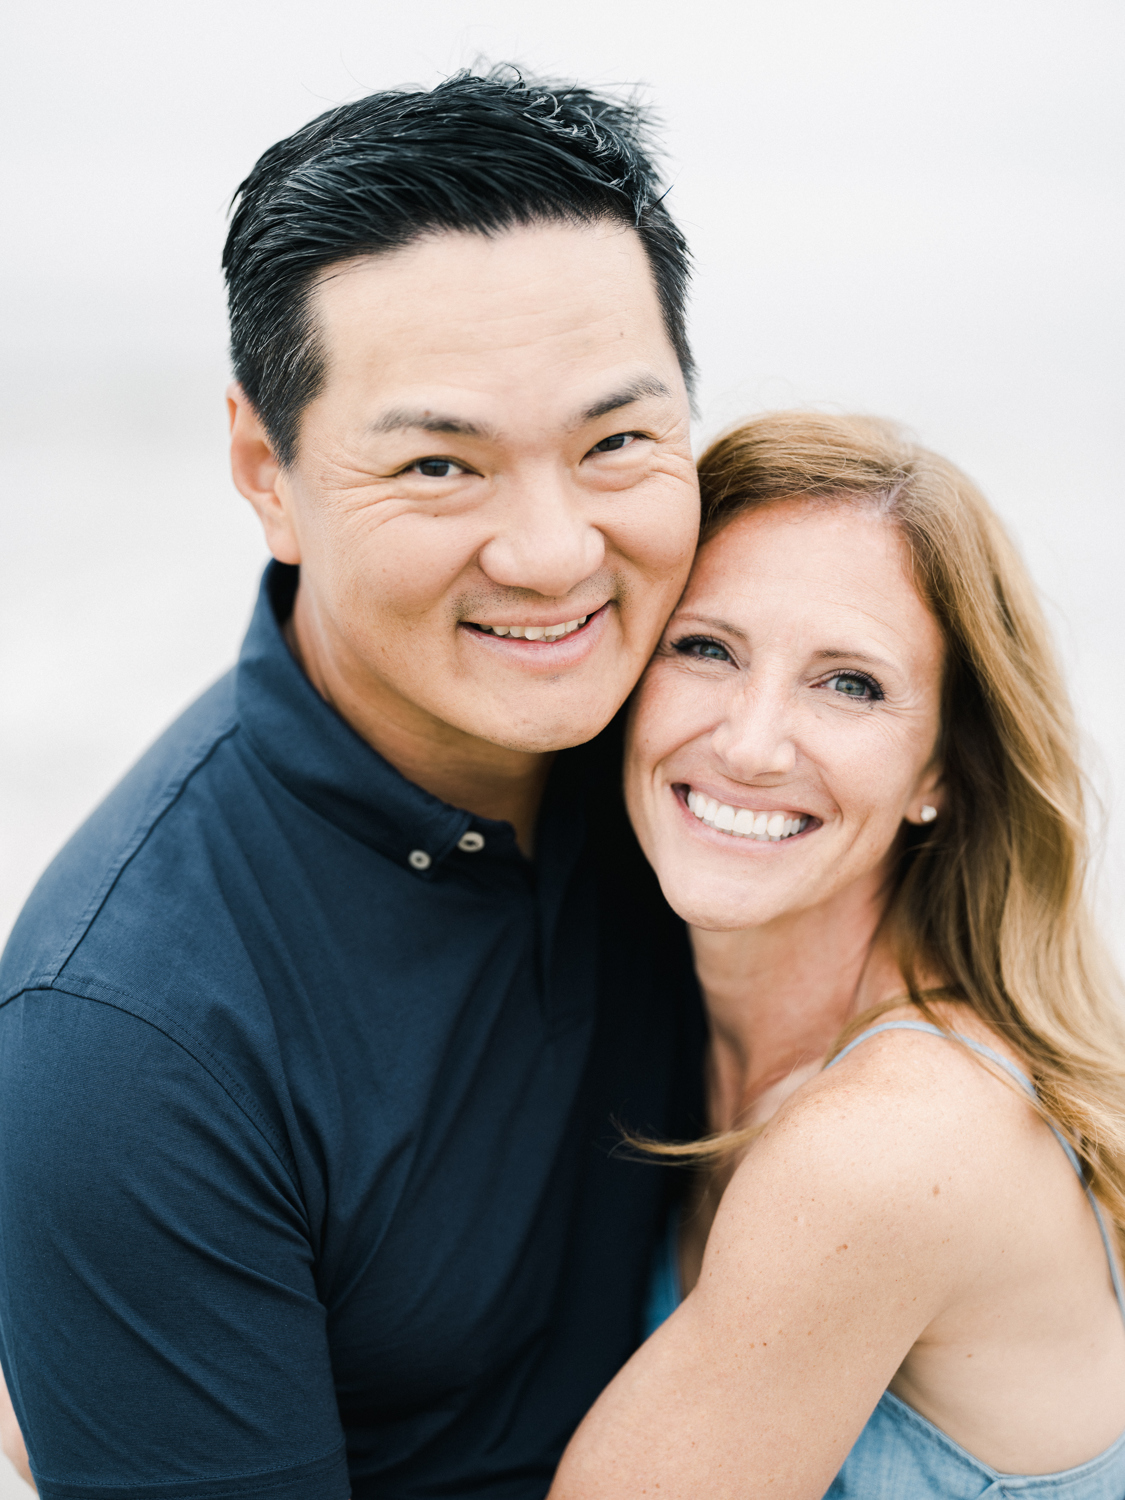 Couple holding one another at the beach and looking into camera